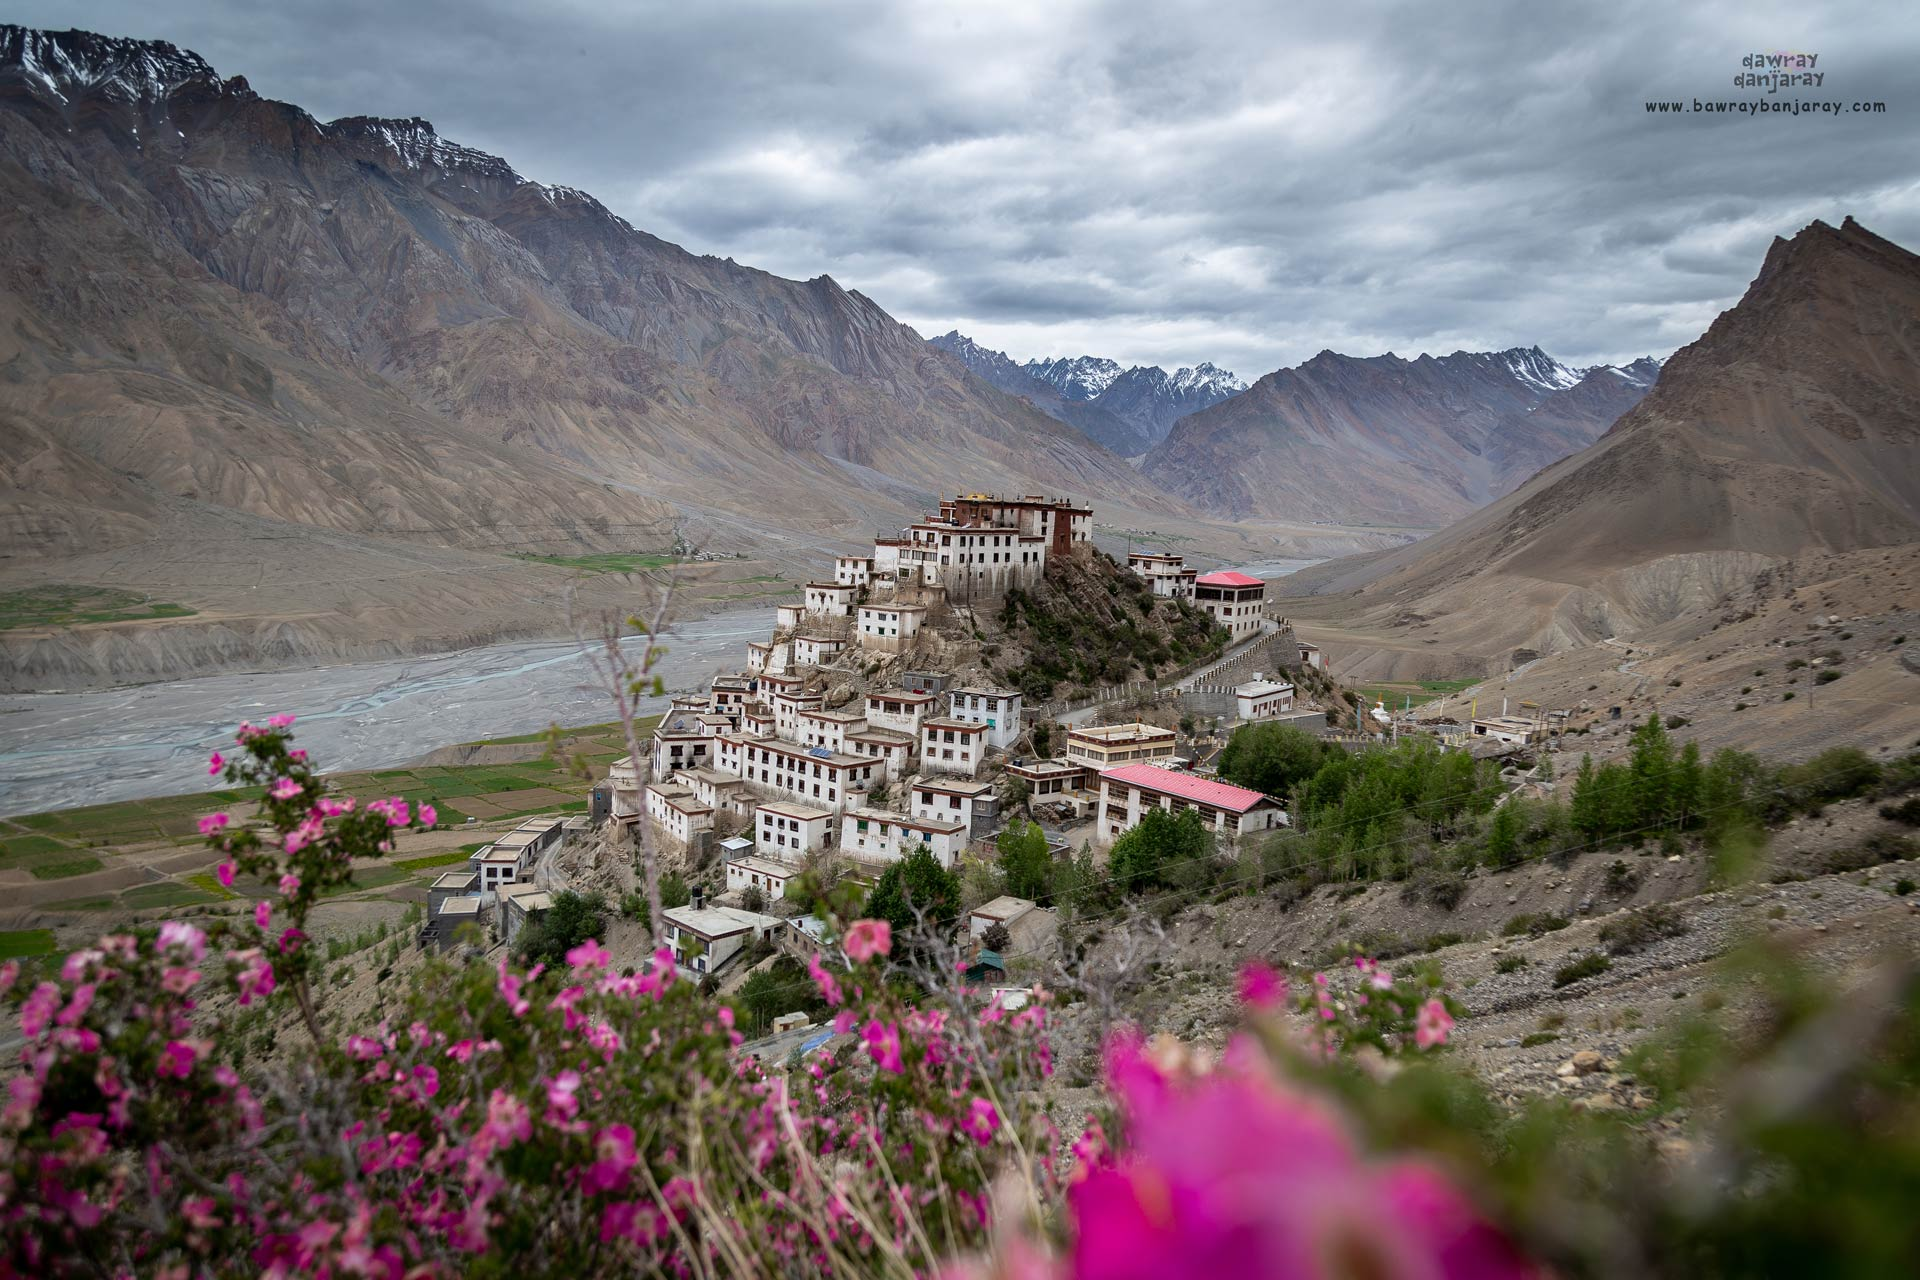 Kee is one of the most famous villages of Spiti Valley